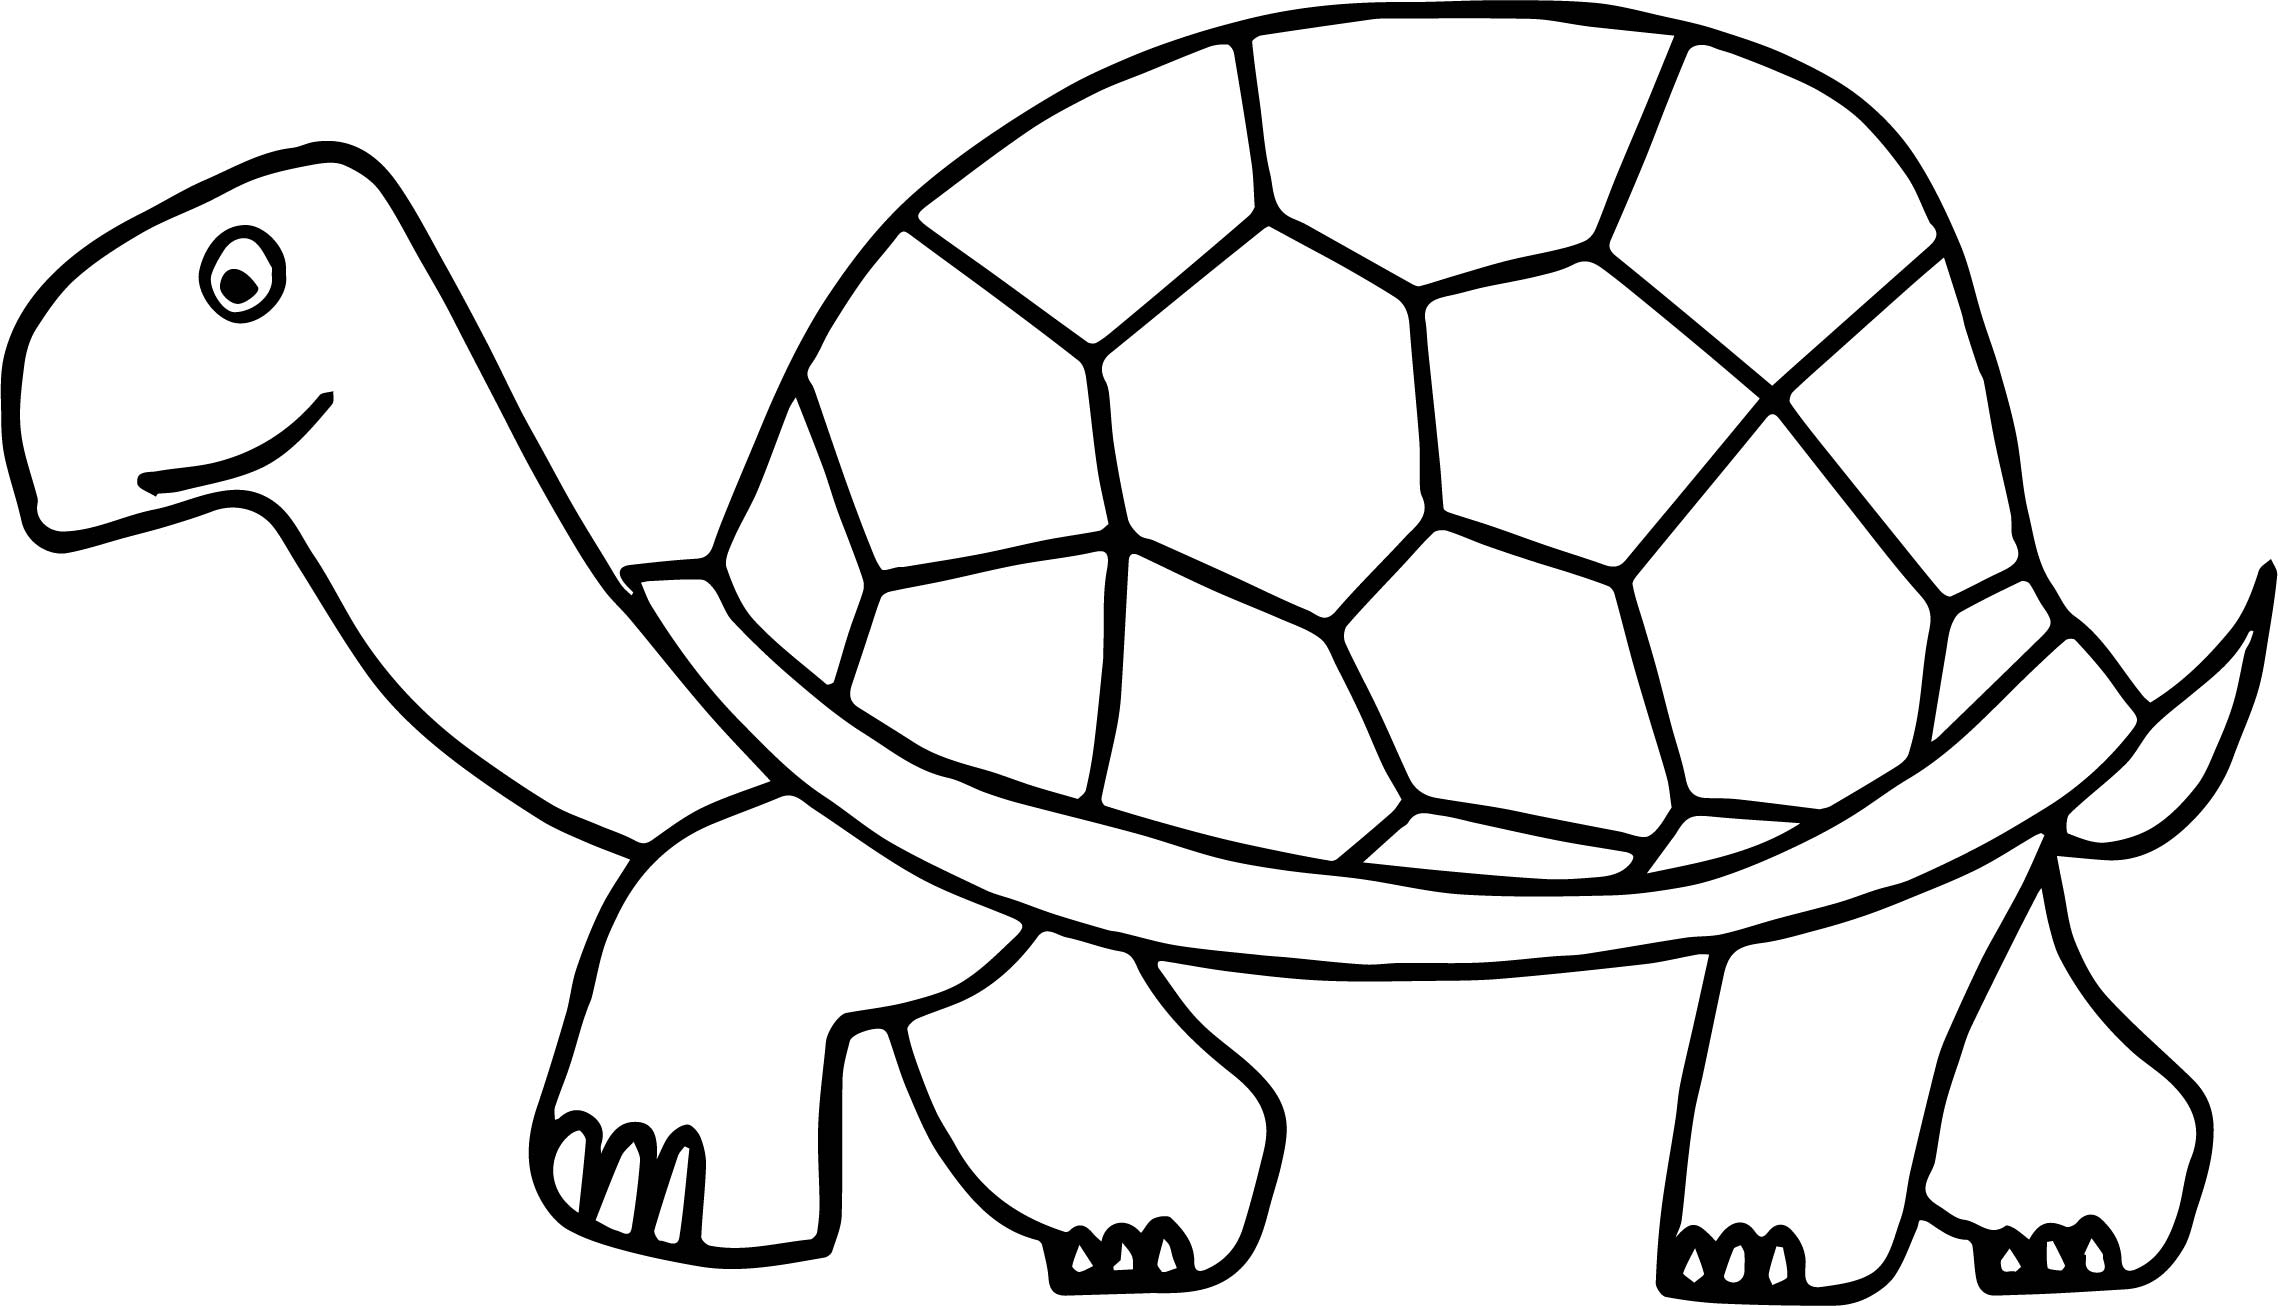 tortoise colouring pictures turtles to color for kids turtles kids coloring pages pictures colouring tortoise